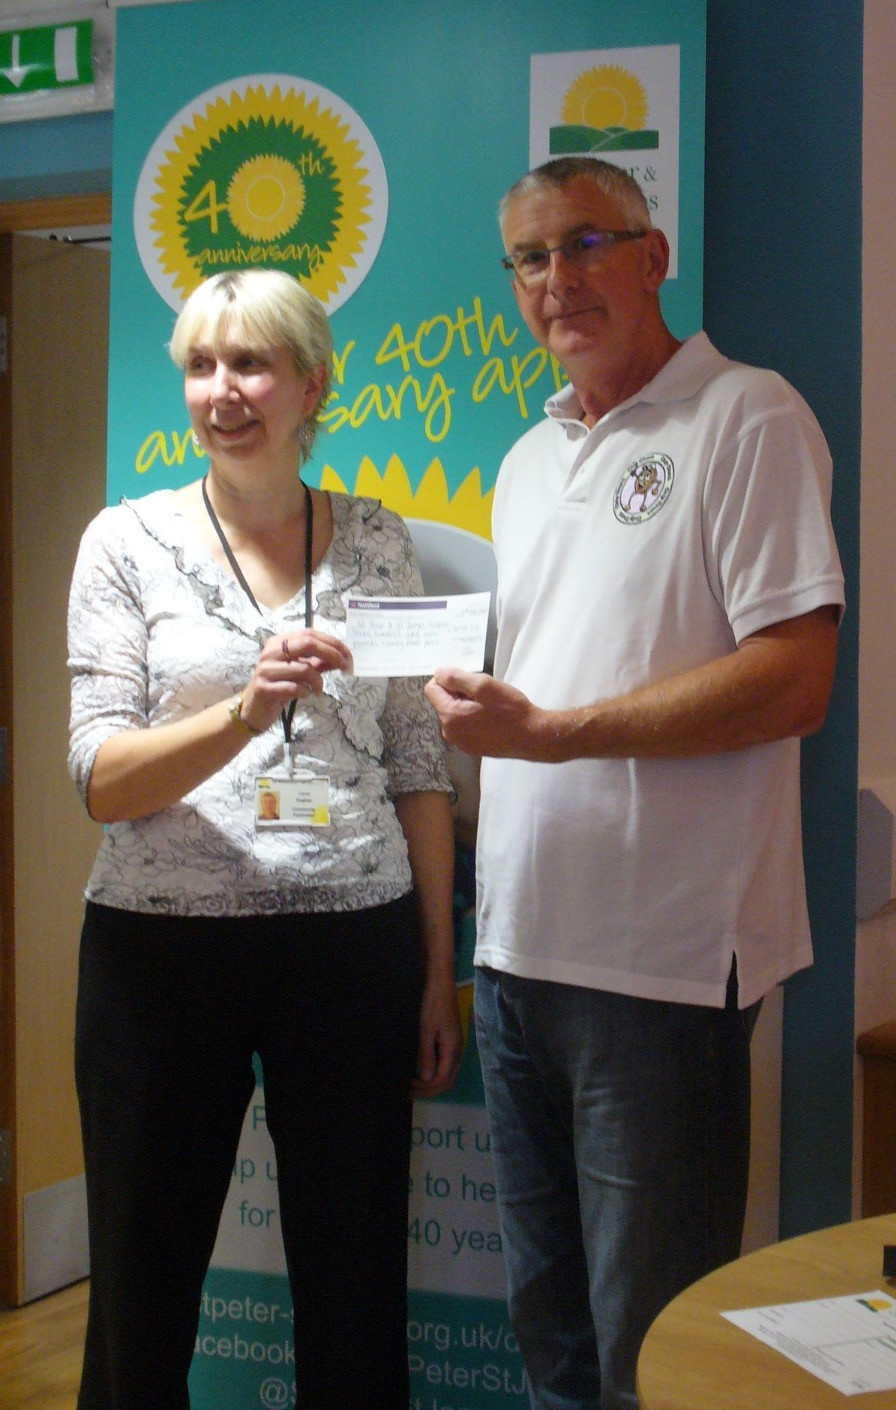 Chip Chuck donating funds to St Peter and St James Hospice